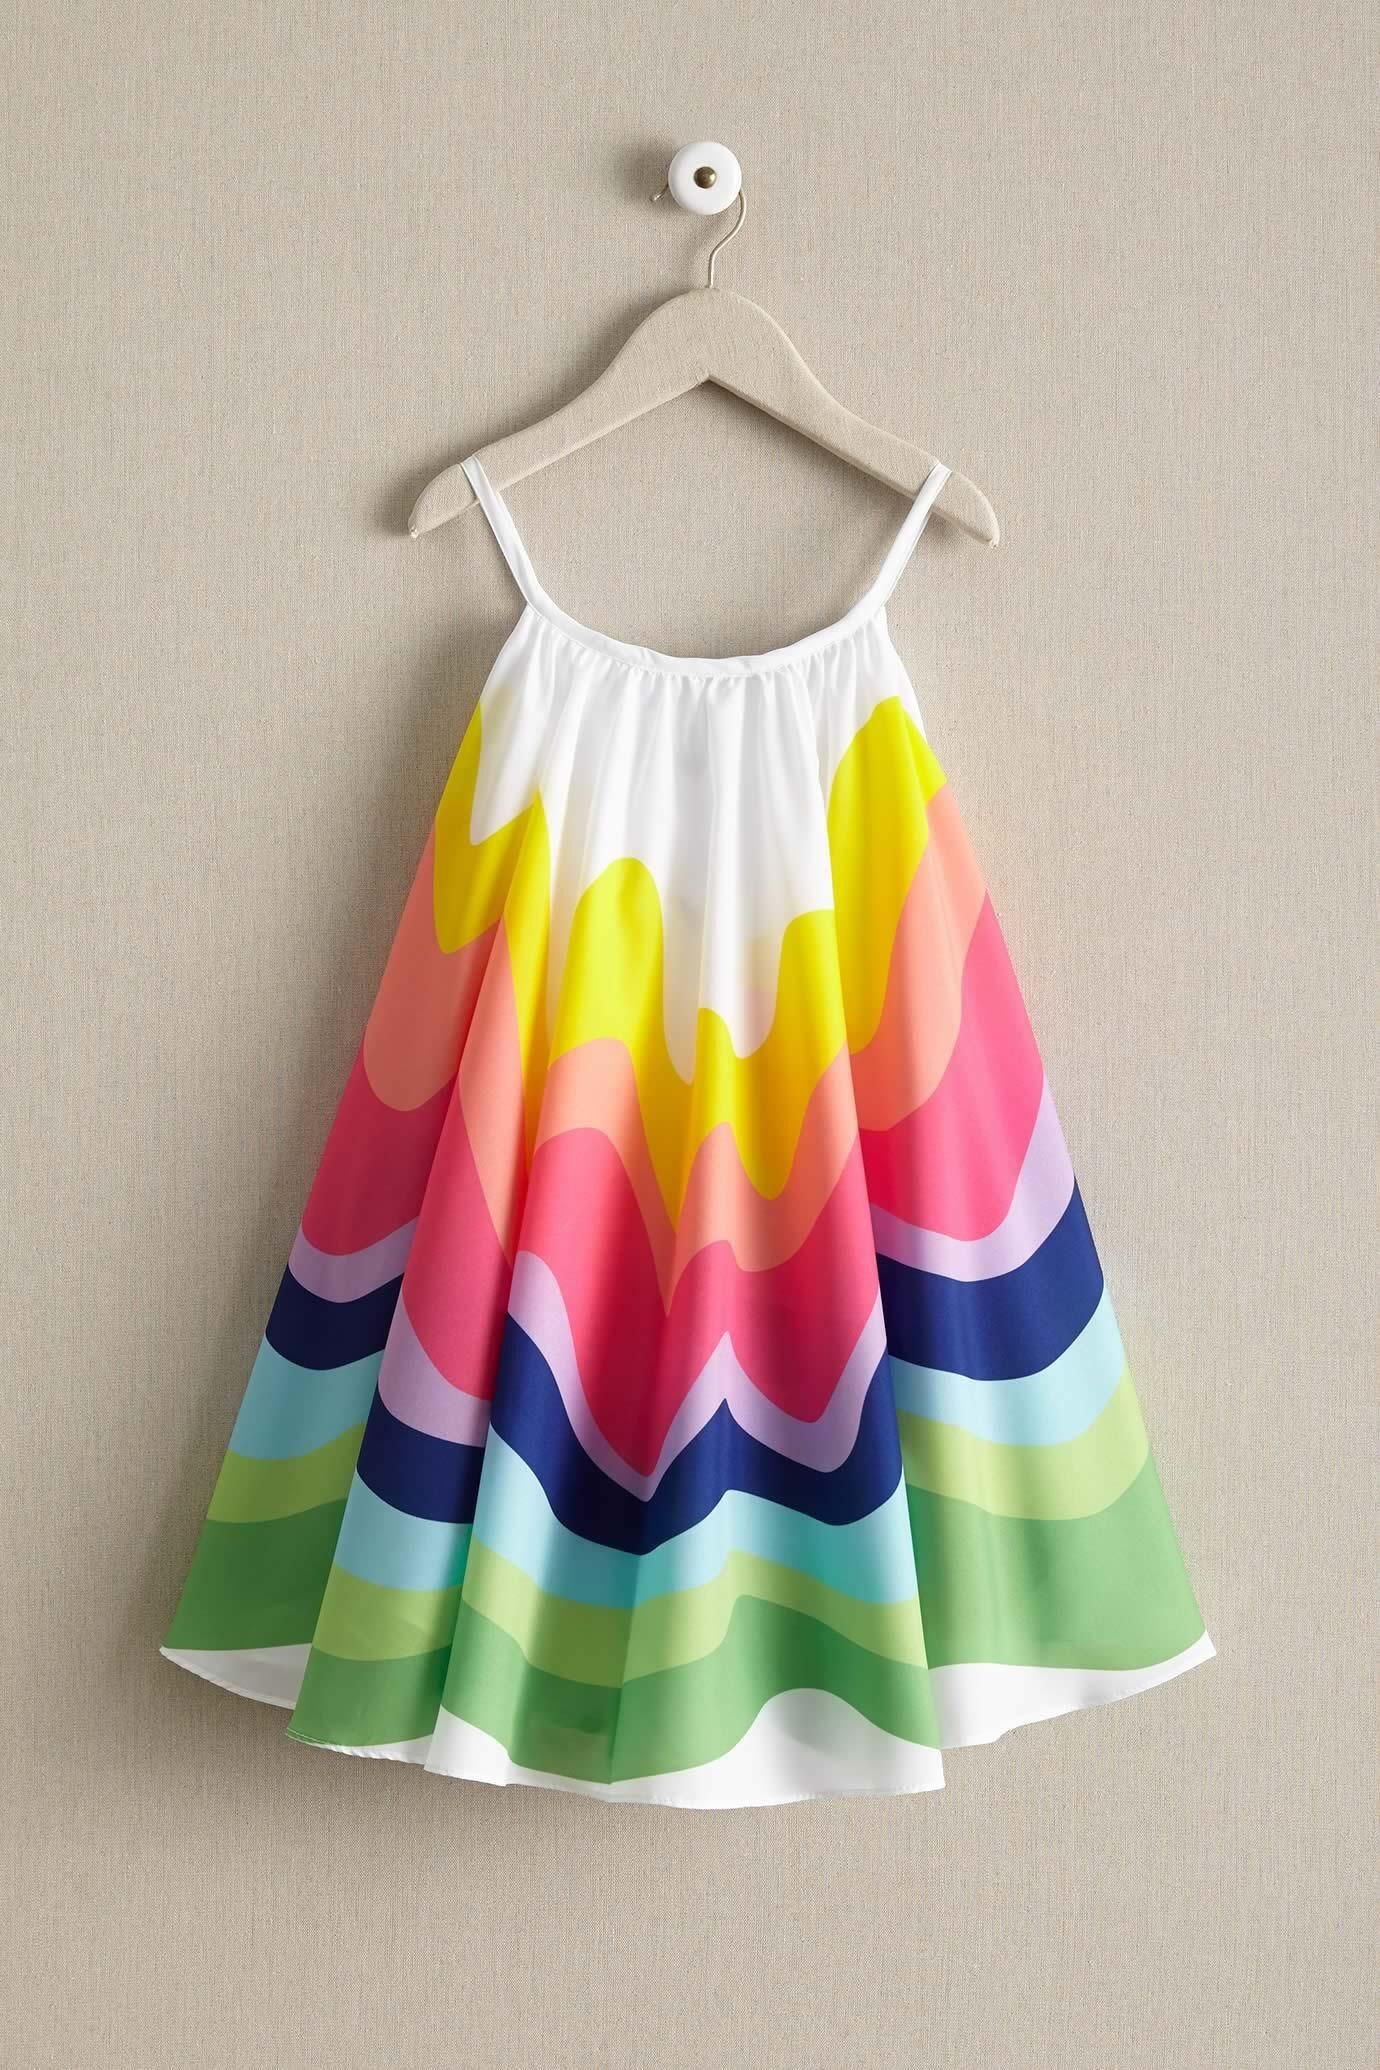 71c07f951af04 Girls Rainbow Dress | SEWING | Baby girl dresses, Toddler girl ...